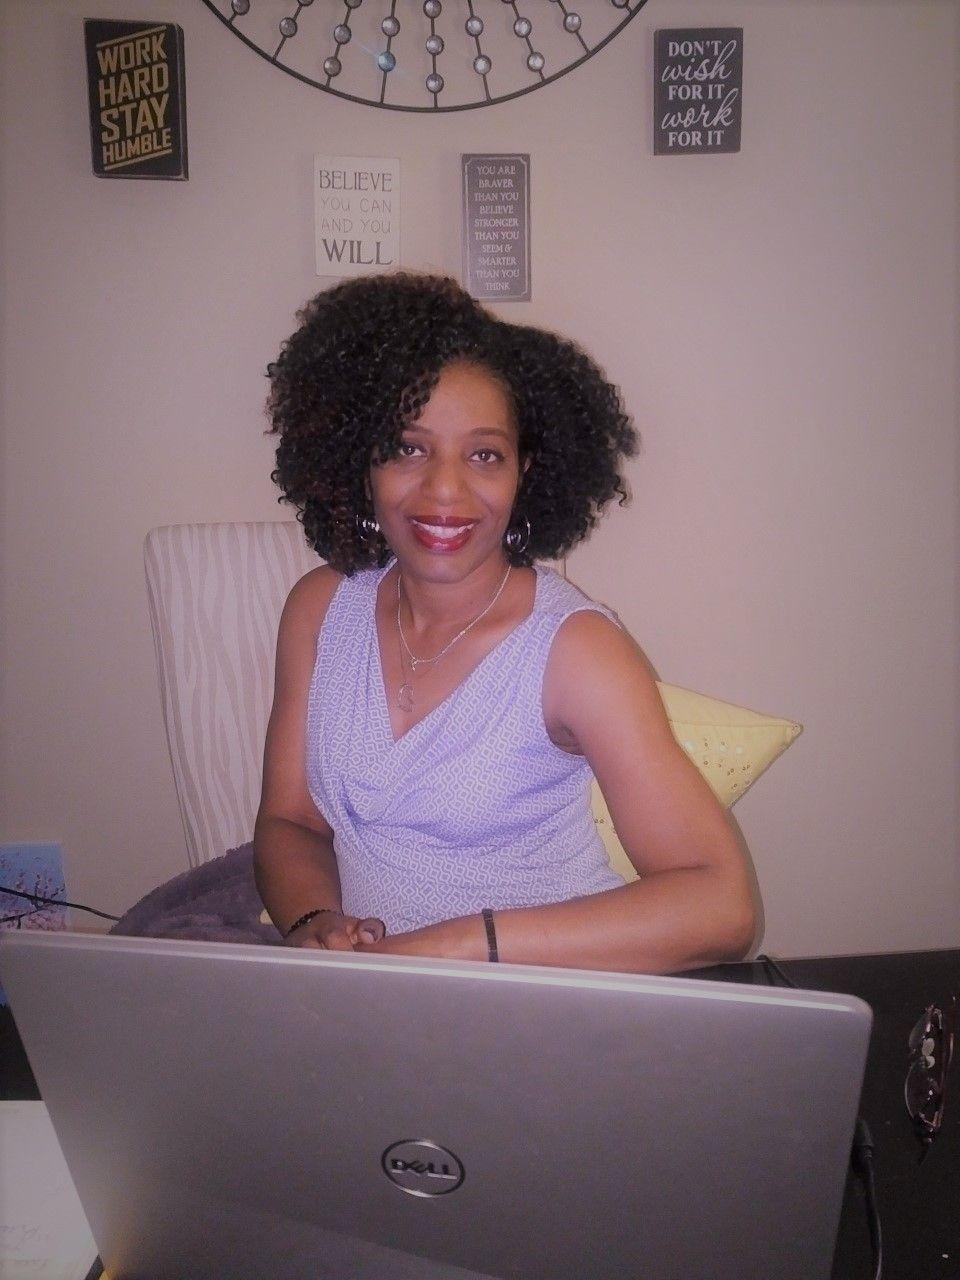 grenada county single women Online dating brings singles together who may never otherwise meet it's a big  world and the singleparentmeetcom community wants to help you connect with .